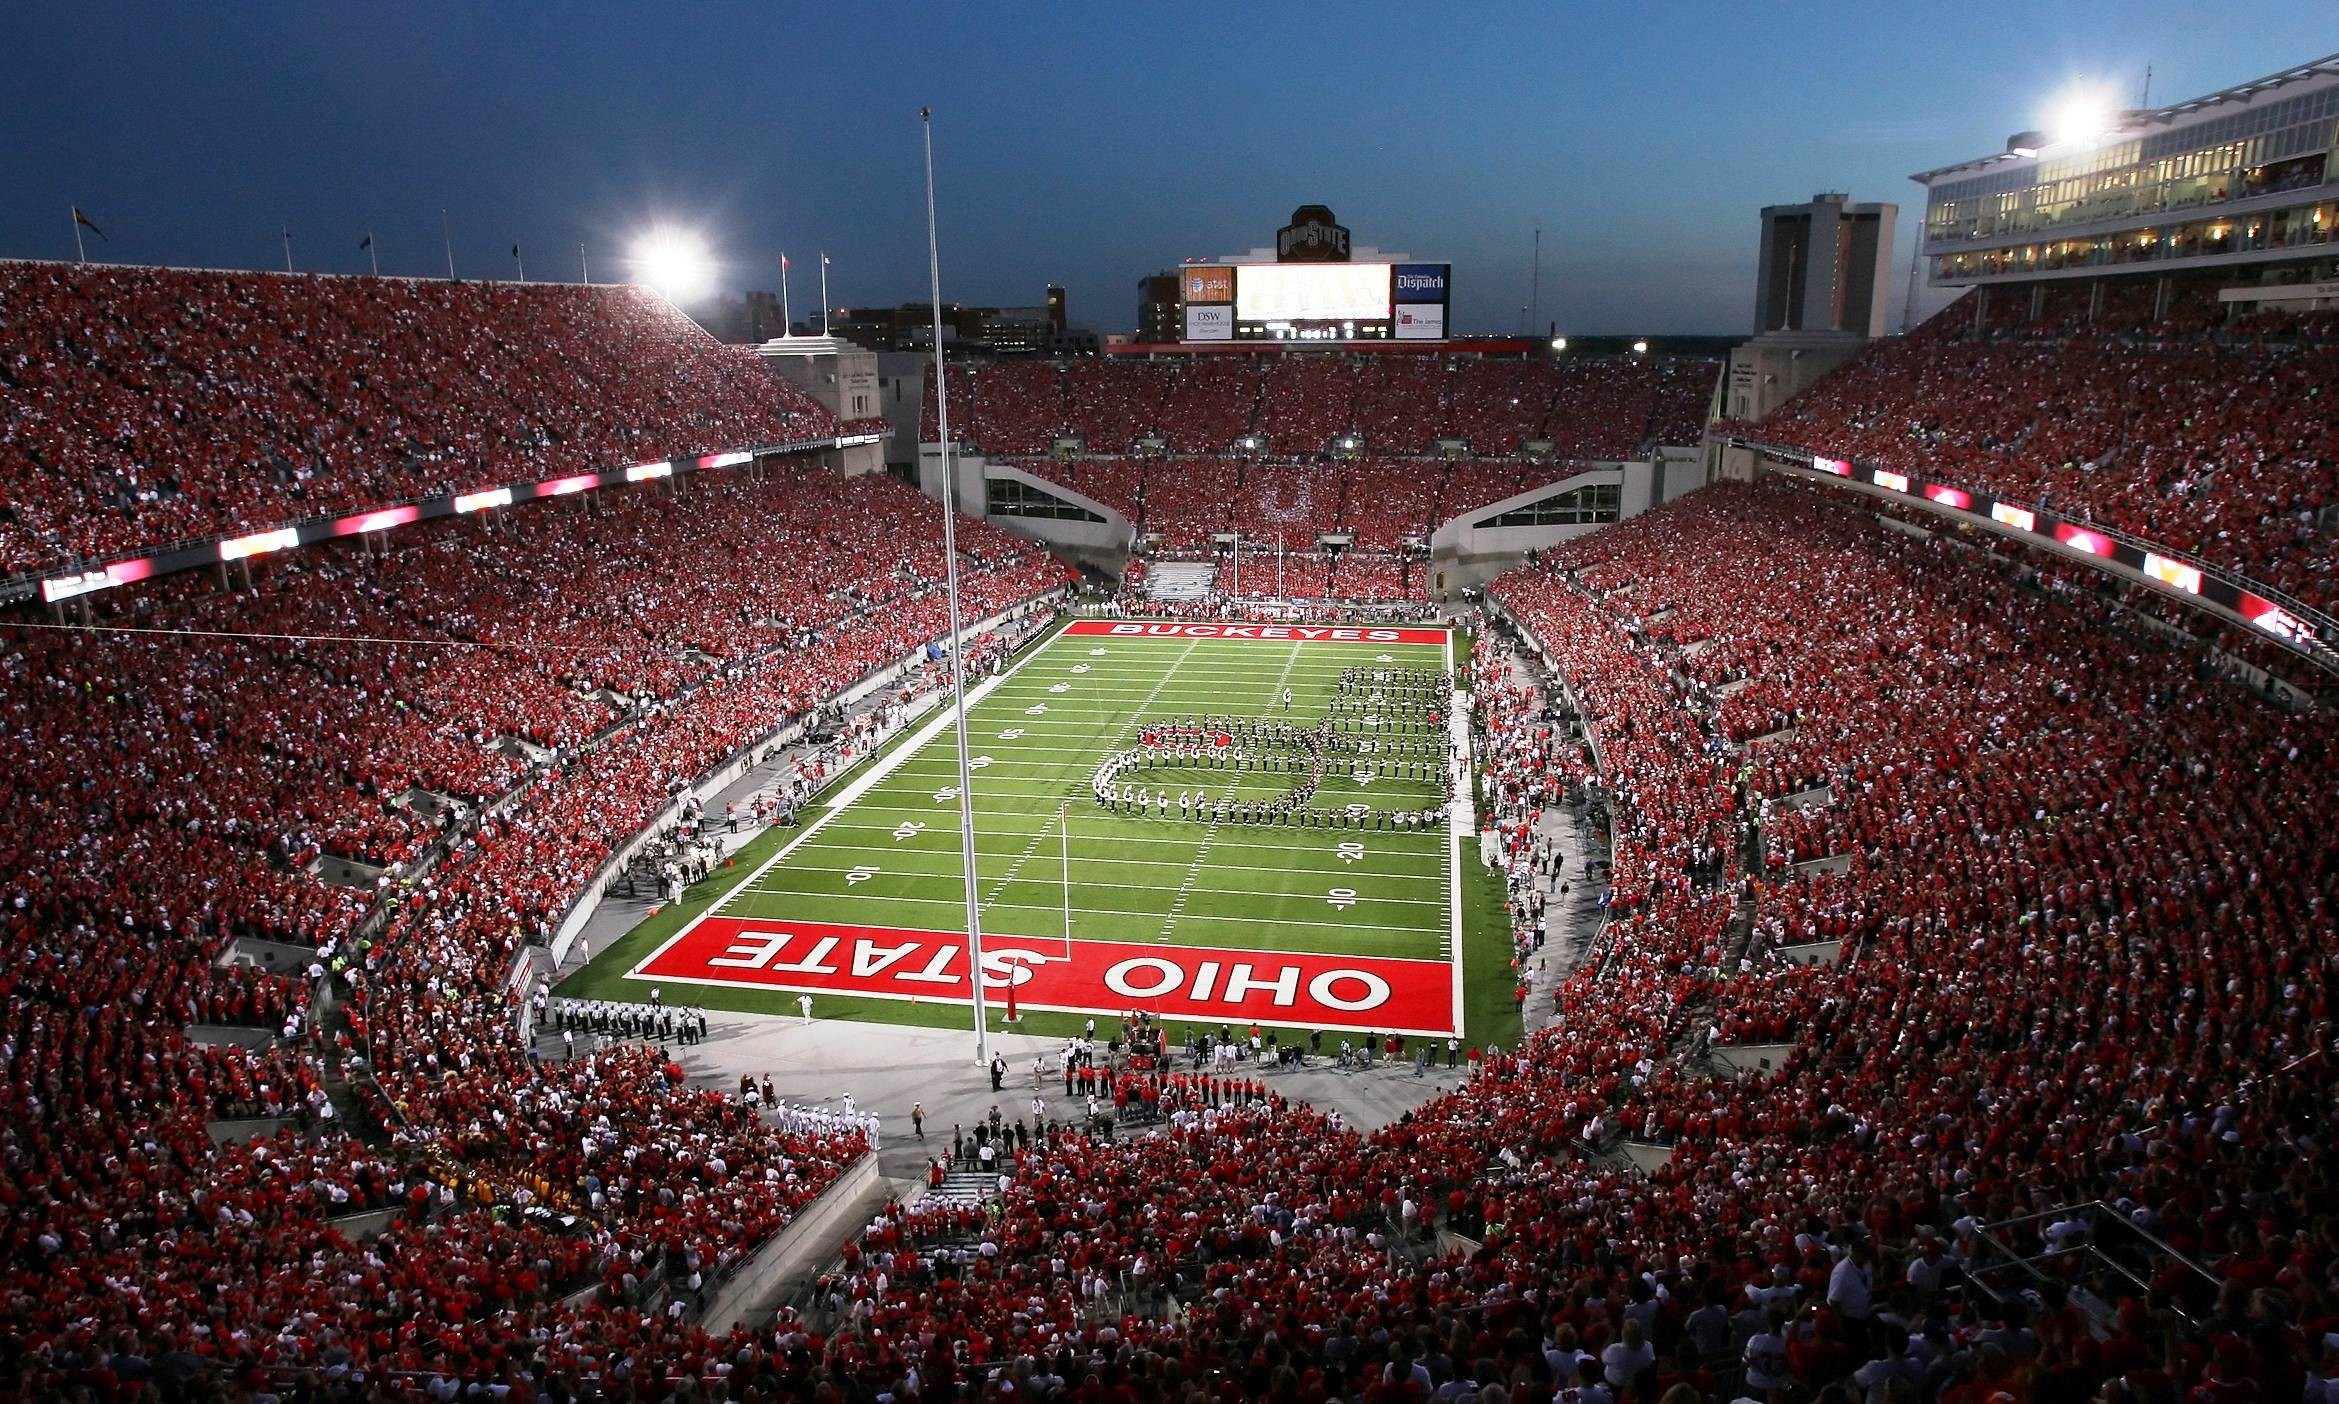 2339x1404 ohio state buckeyes college football 2339×1404 desktop wallpapers hd 4k  high definition windows 10 mac apple colourful images download wallpaper  2339×1404 ...